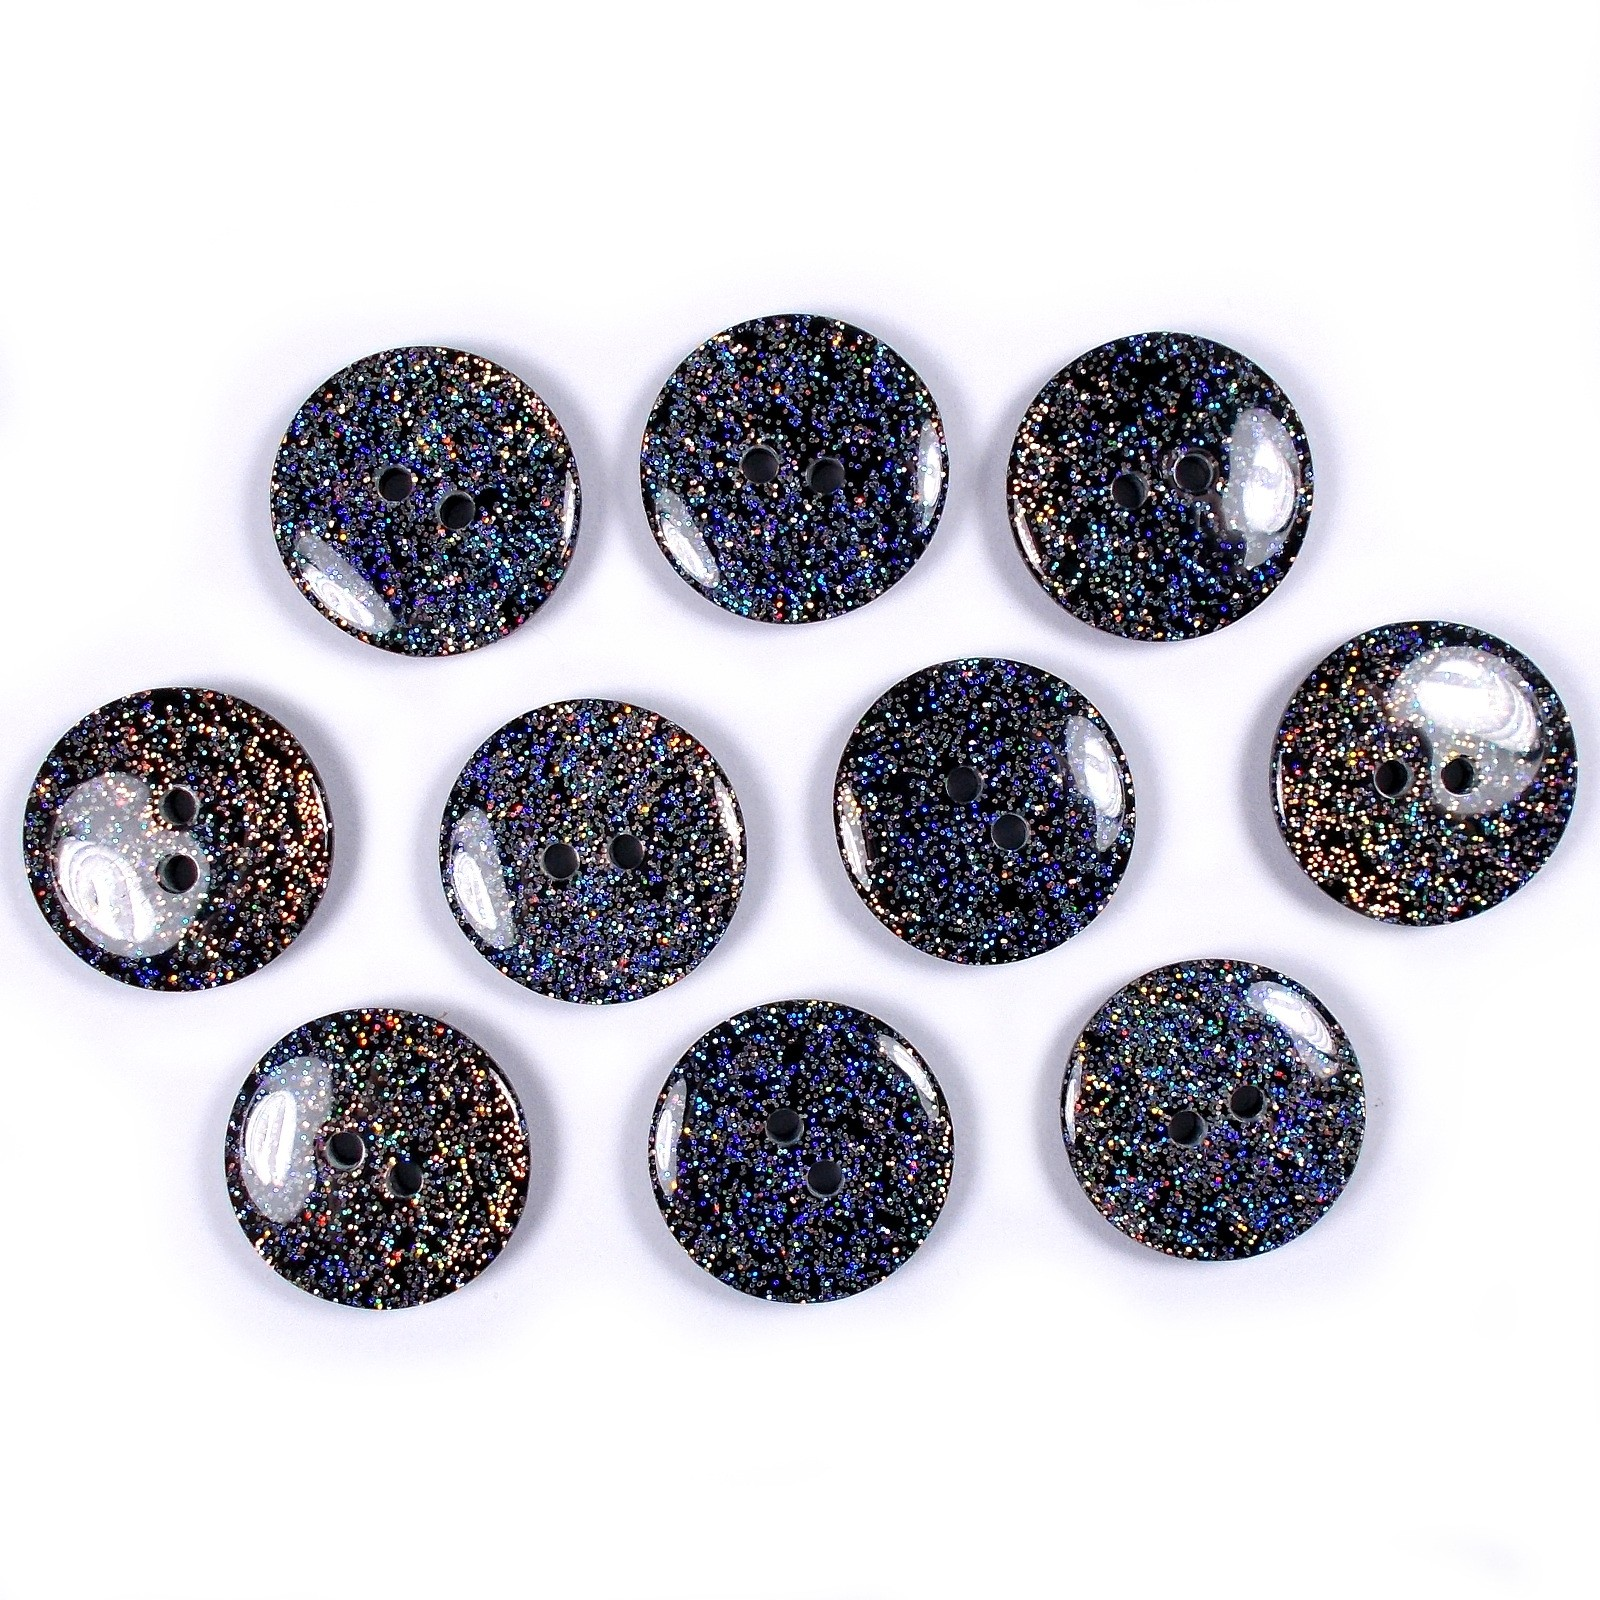 Iridescent Glitter Round 2 Hole Buttons 12mm Black Pack of 10